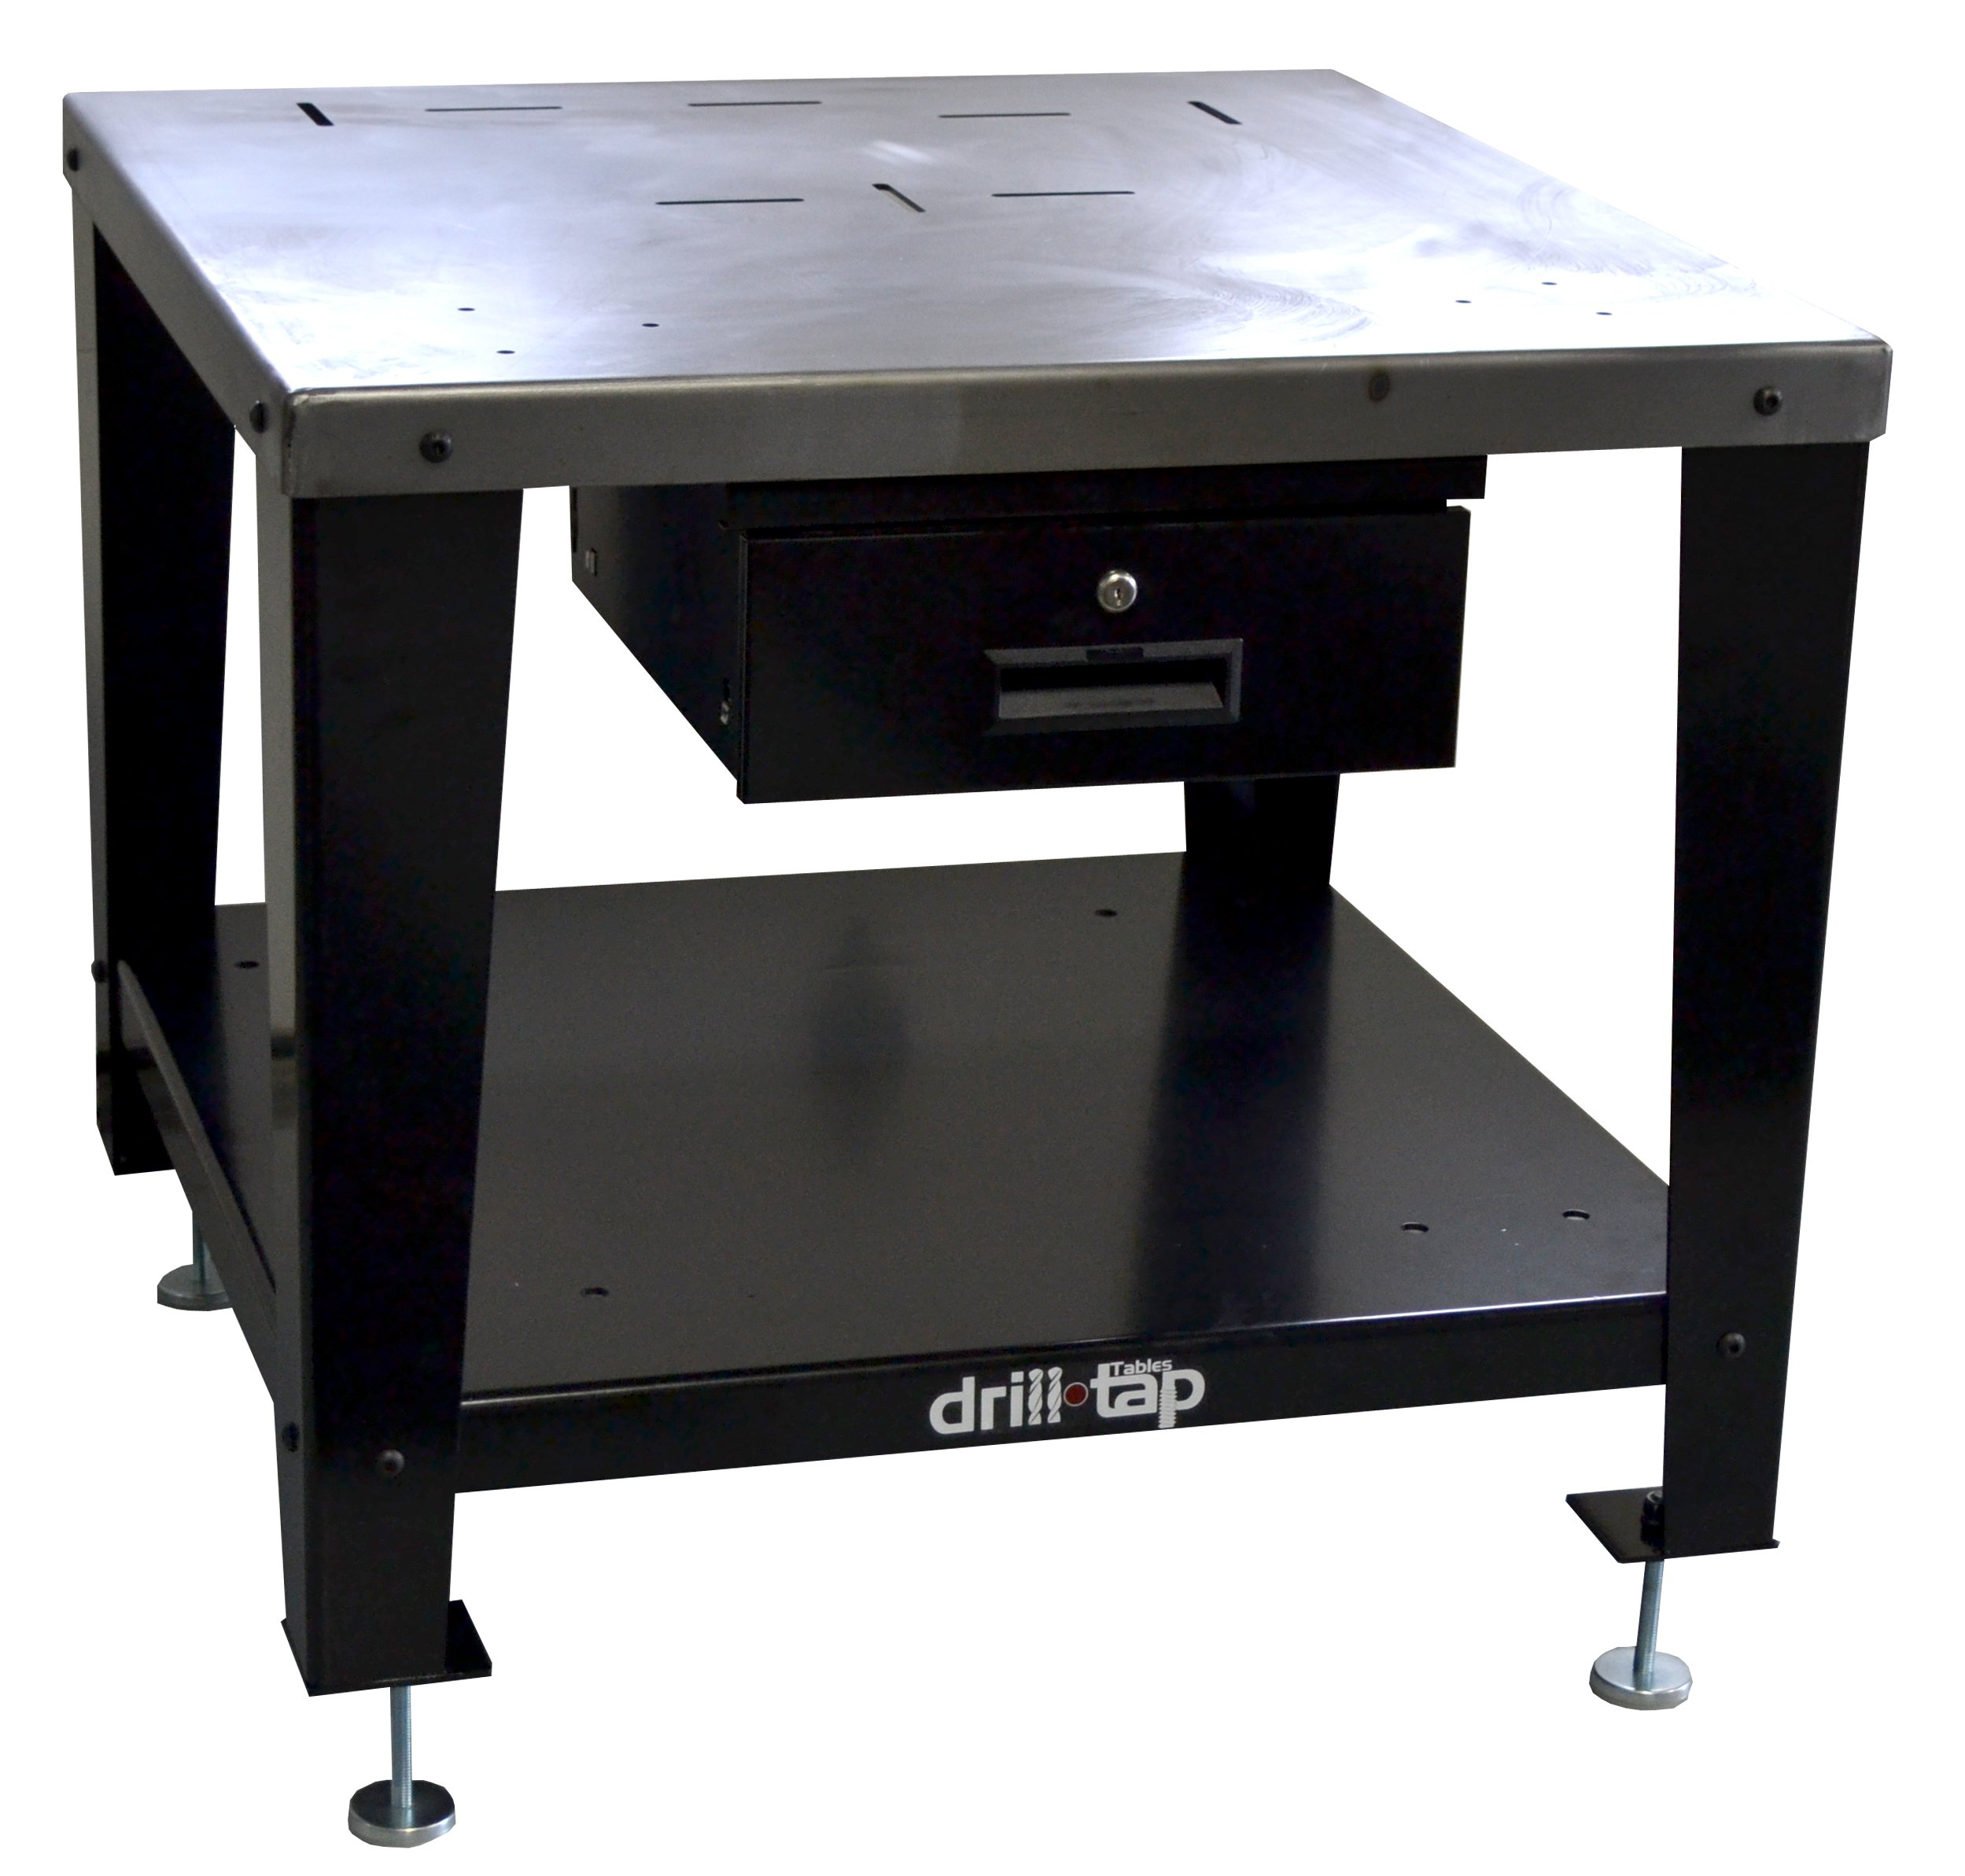 u-Tap U1110A Drill Tap Table with Adjustable Feet and Drawer, Heavy Duty Steel, Medium by u-Tap